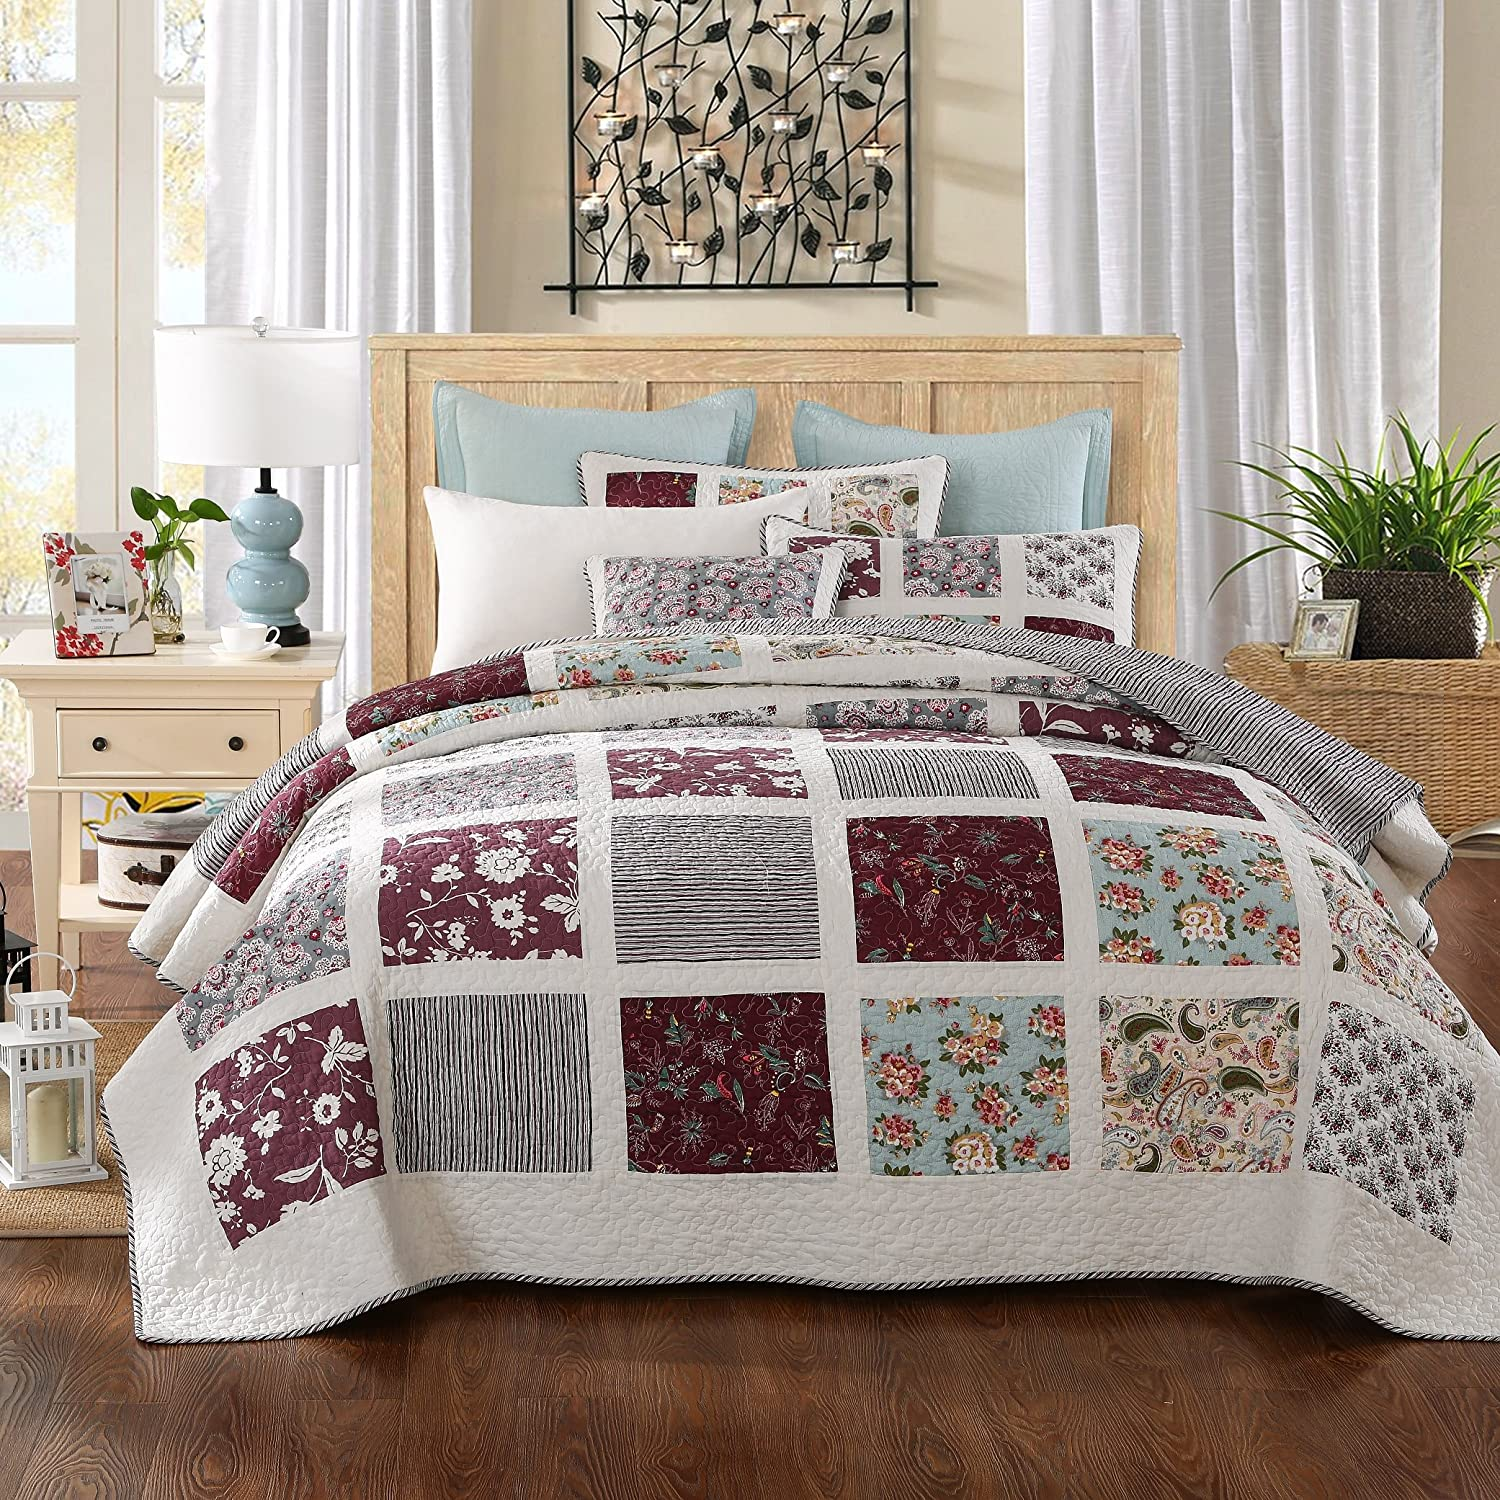 DaDa Bedding Festive Merlot Burgundy Bohemian Reversible Cotton Real Patchwork Quilted Coverlet Bedspread Set